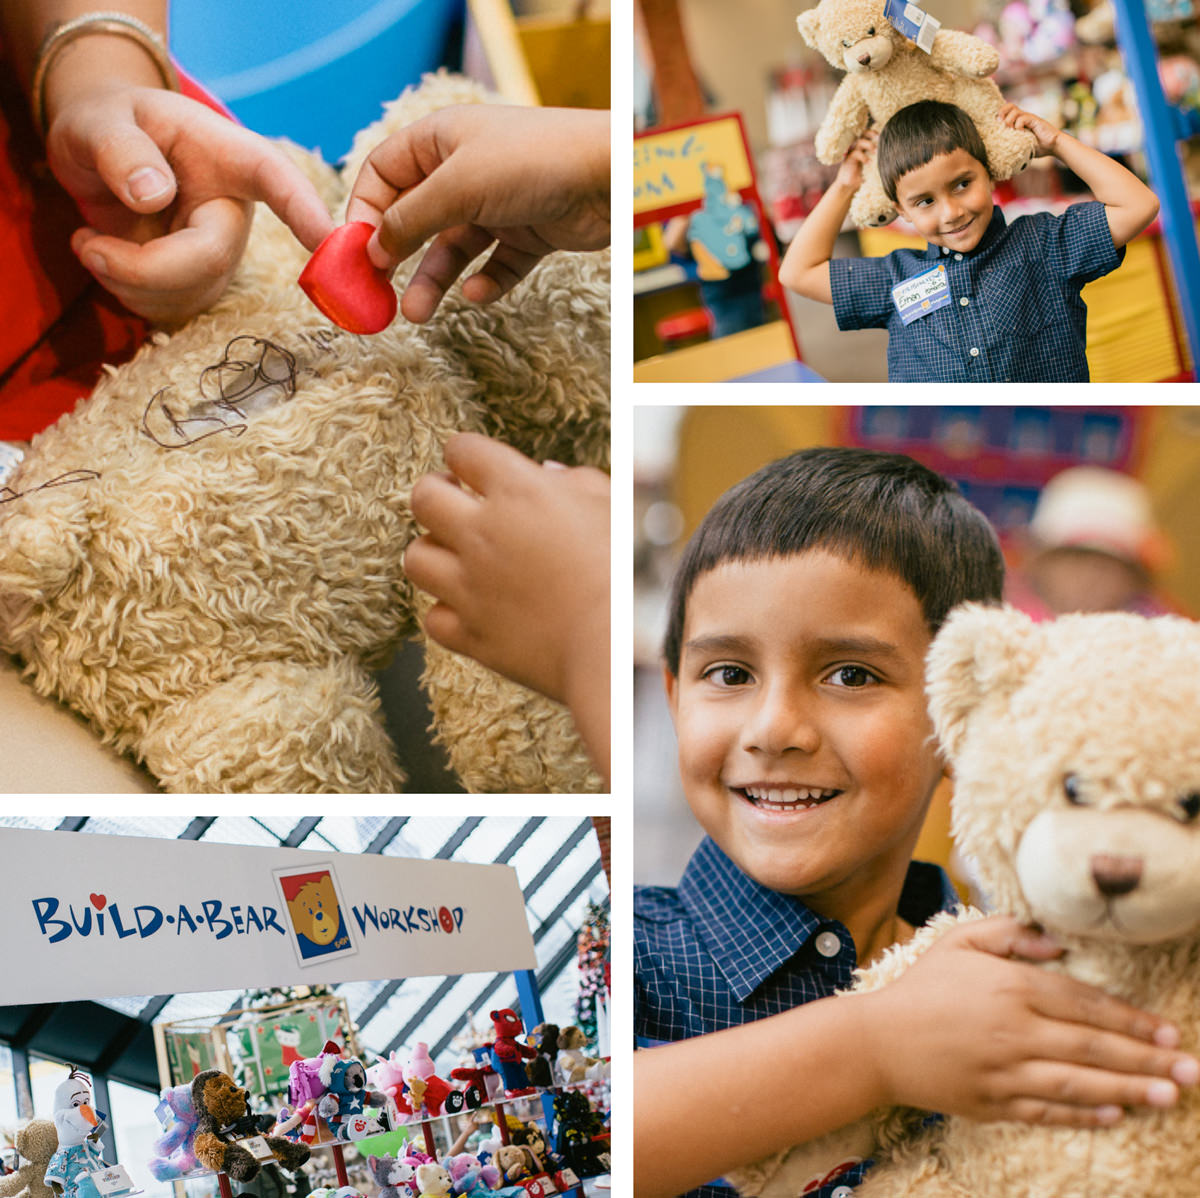 myer build a bear workshop